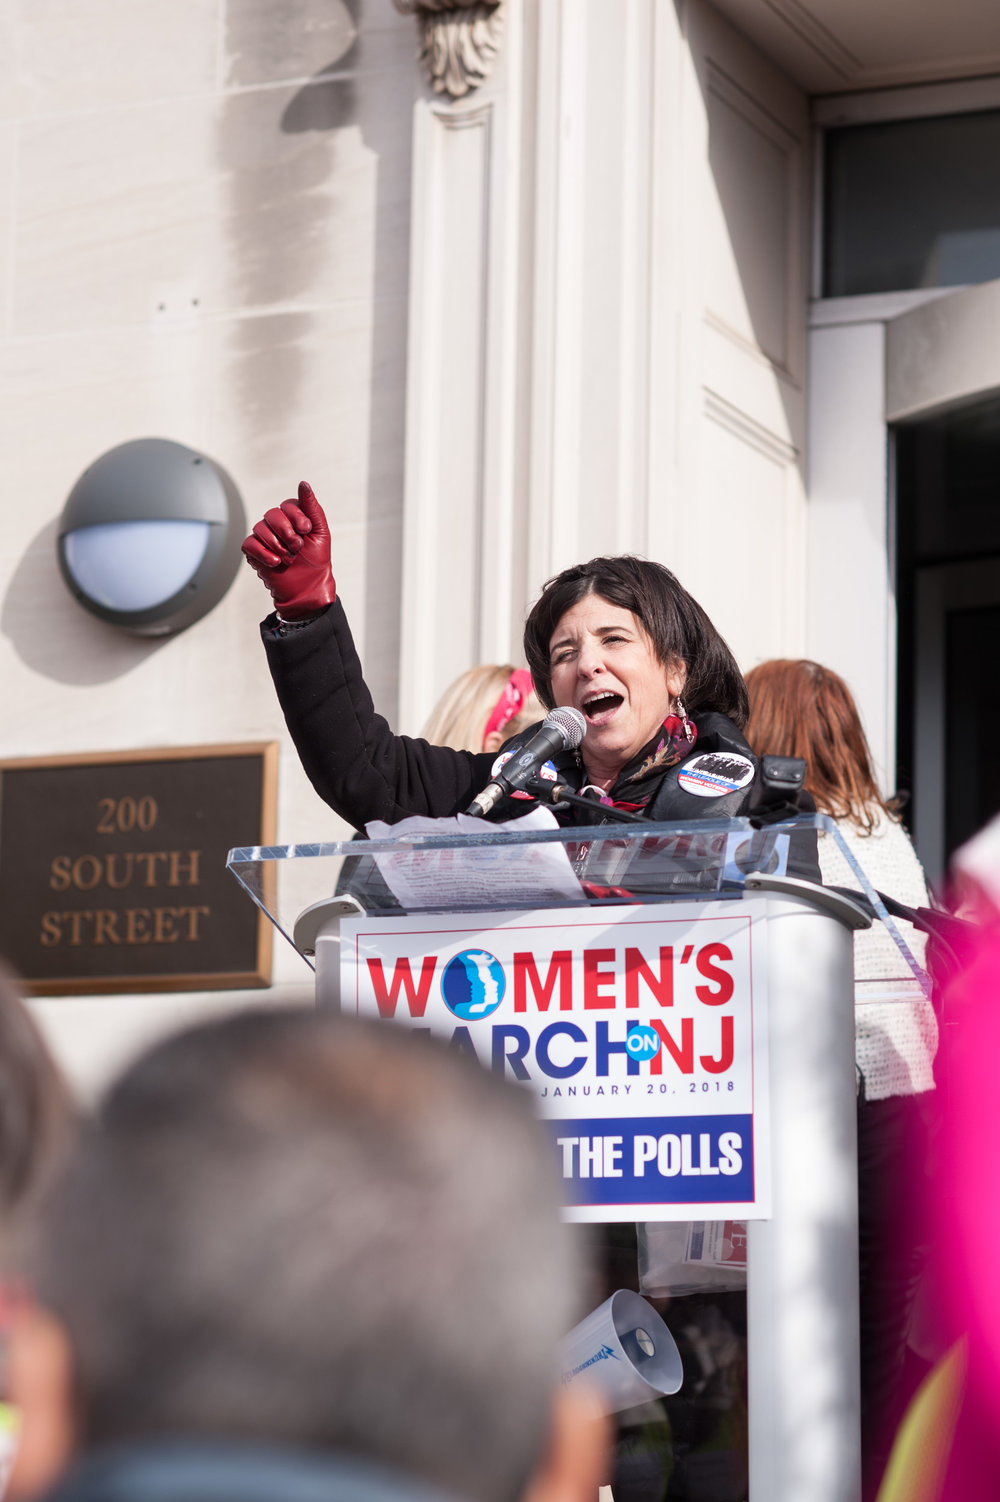 Nancy Hedinger, president of the League of Women Voters at the Women's March on NJ